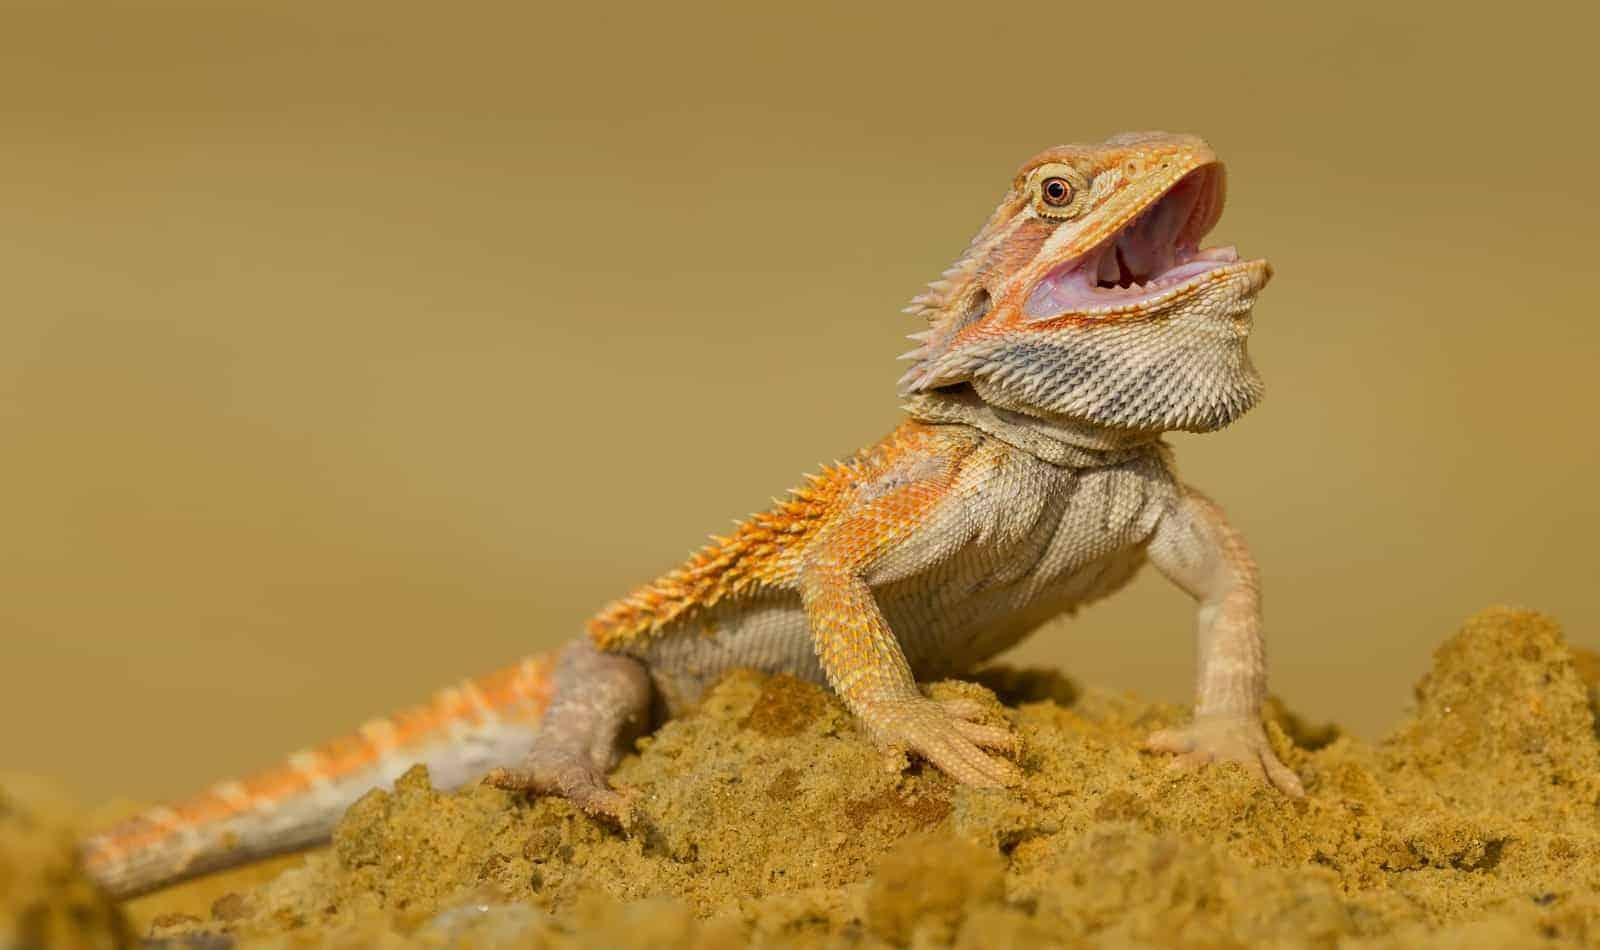 Central three-legged bearded dragon on the rock with an open mouth